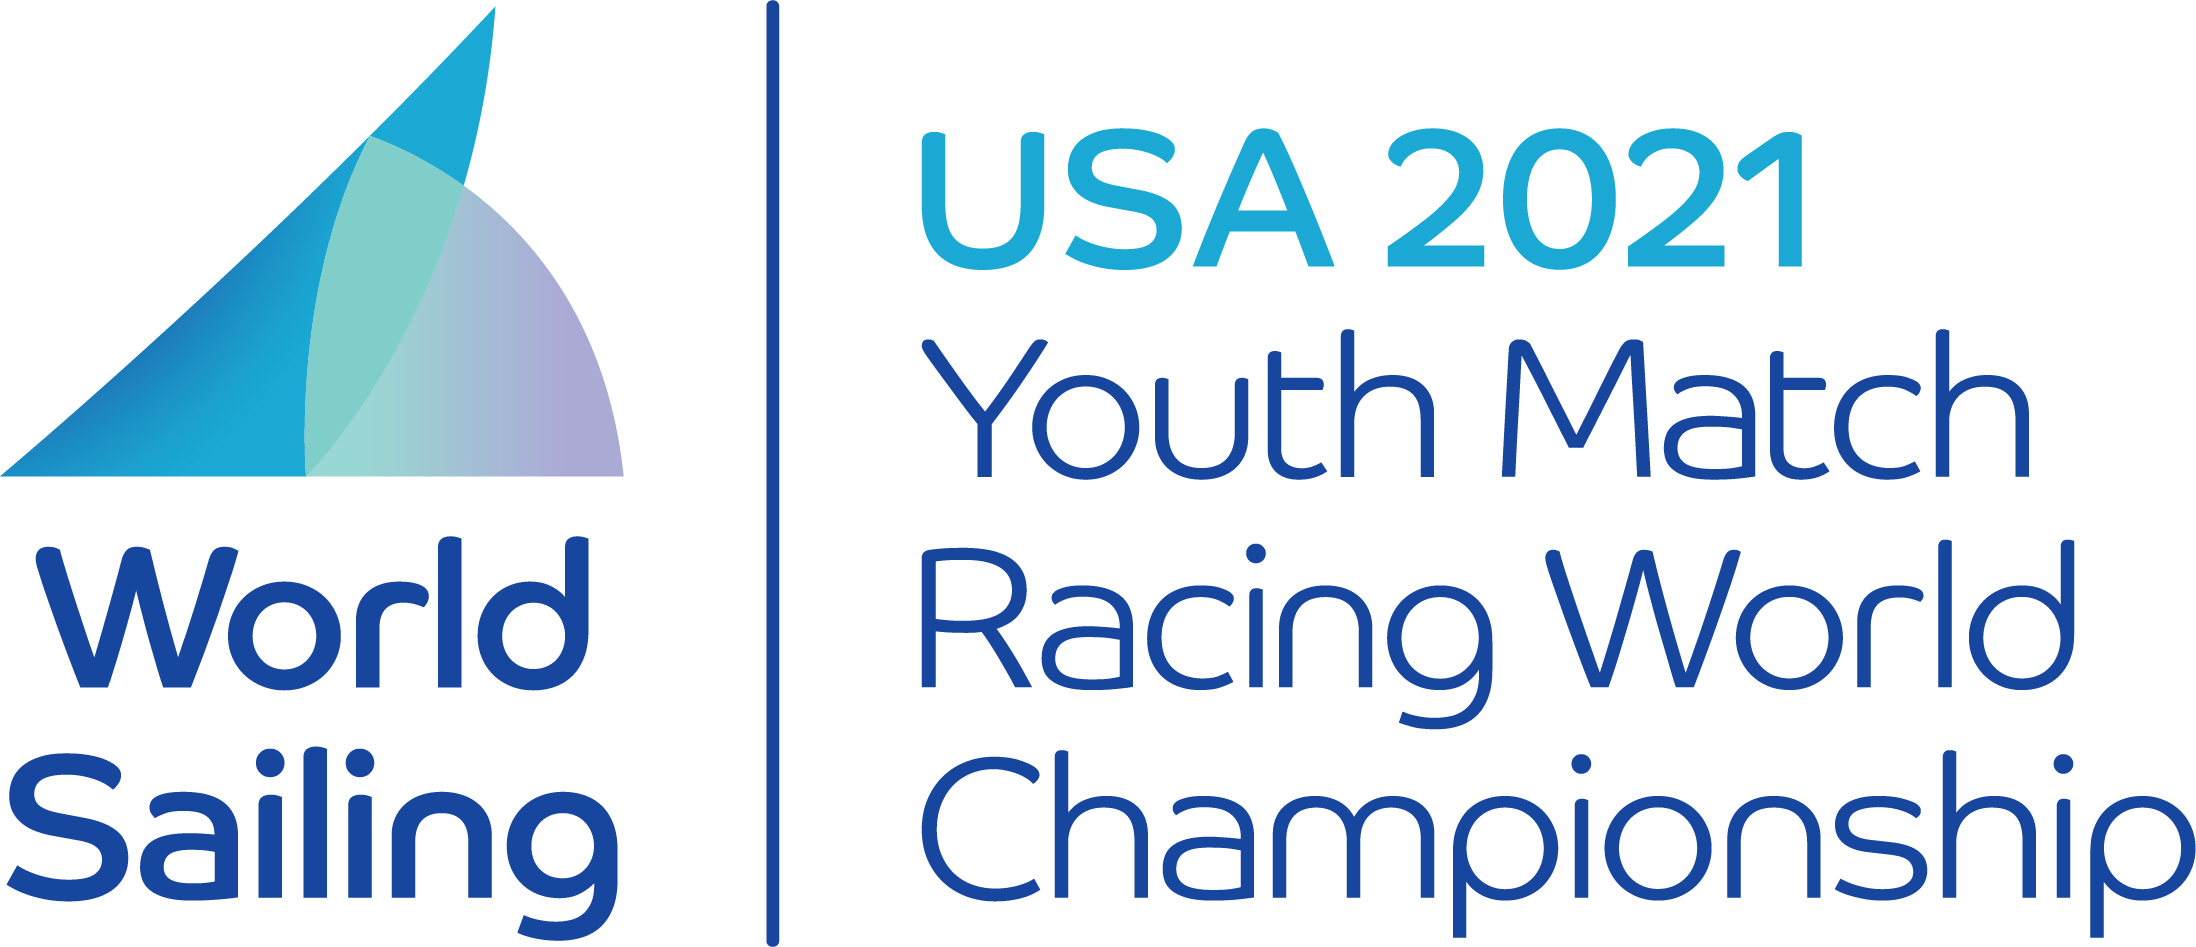 2021 Youth Match Racing World Championship logo